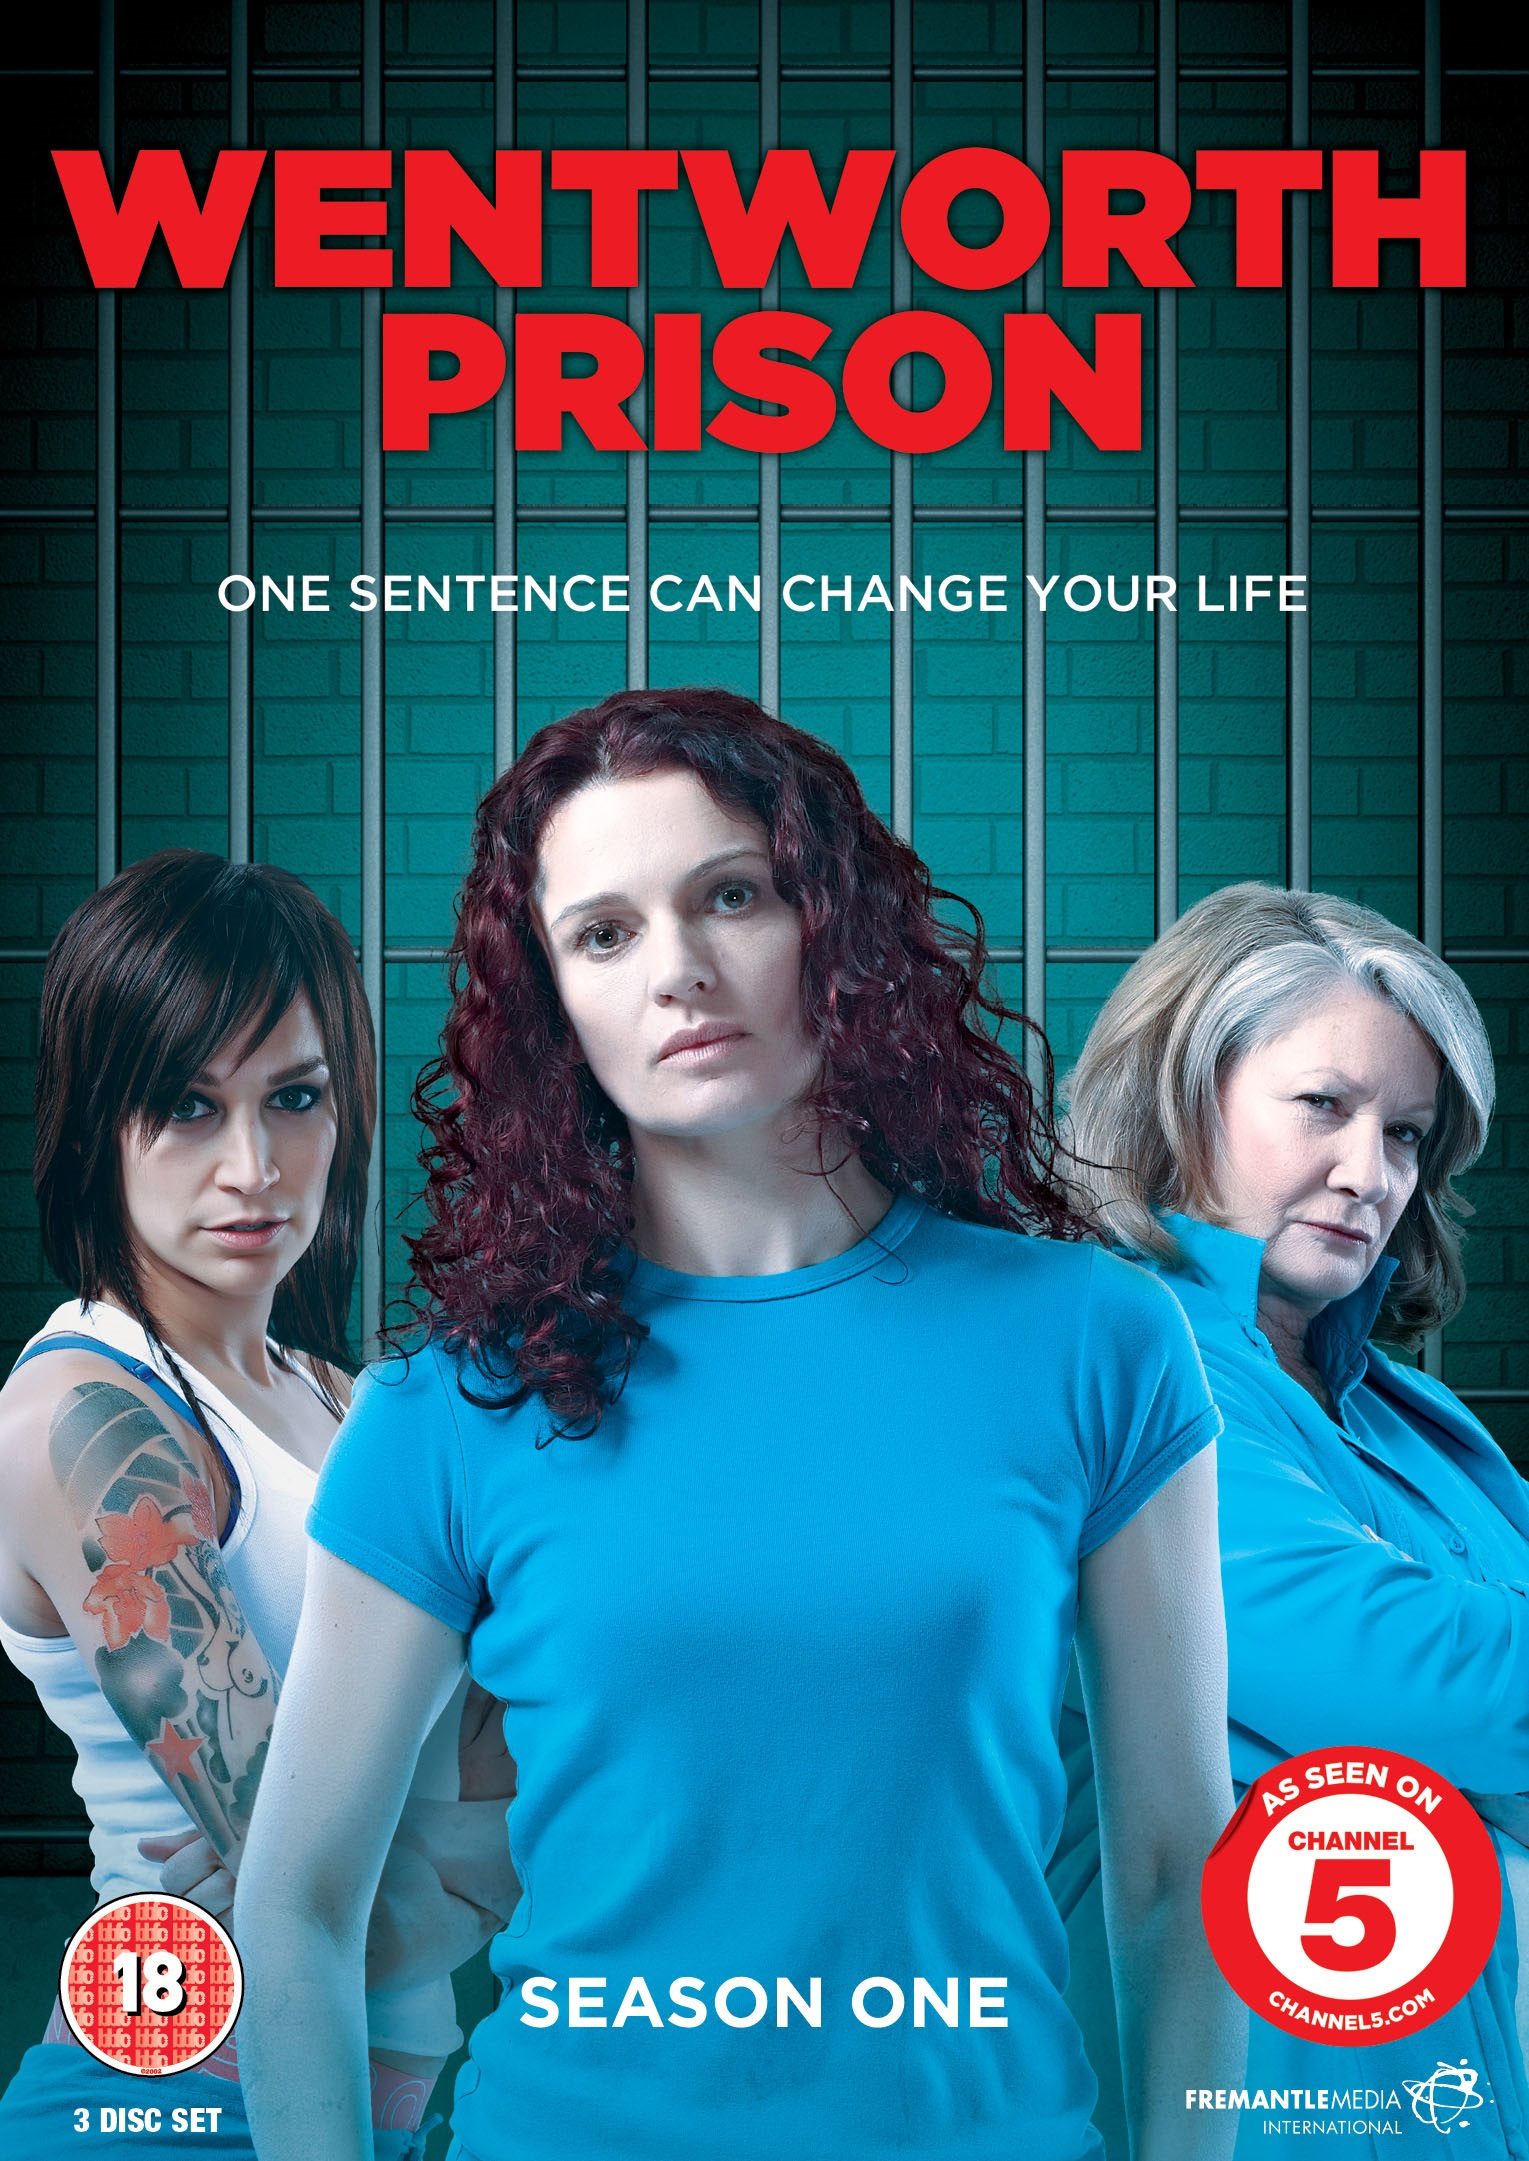 Prisoners 2 release date in Perth